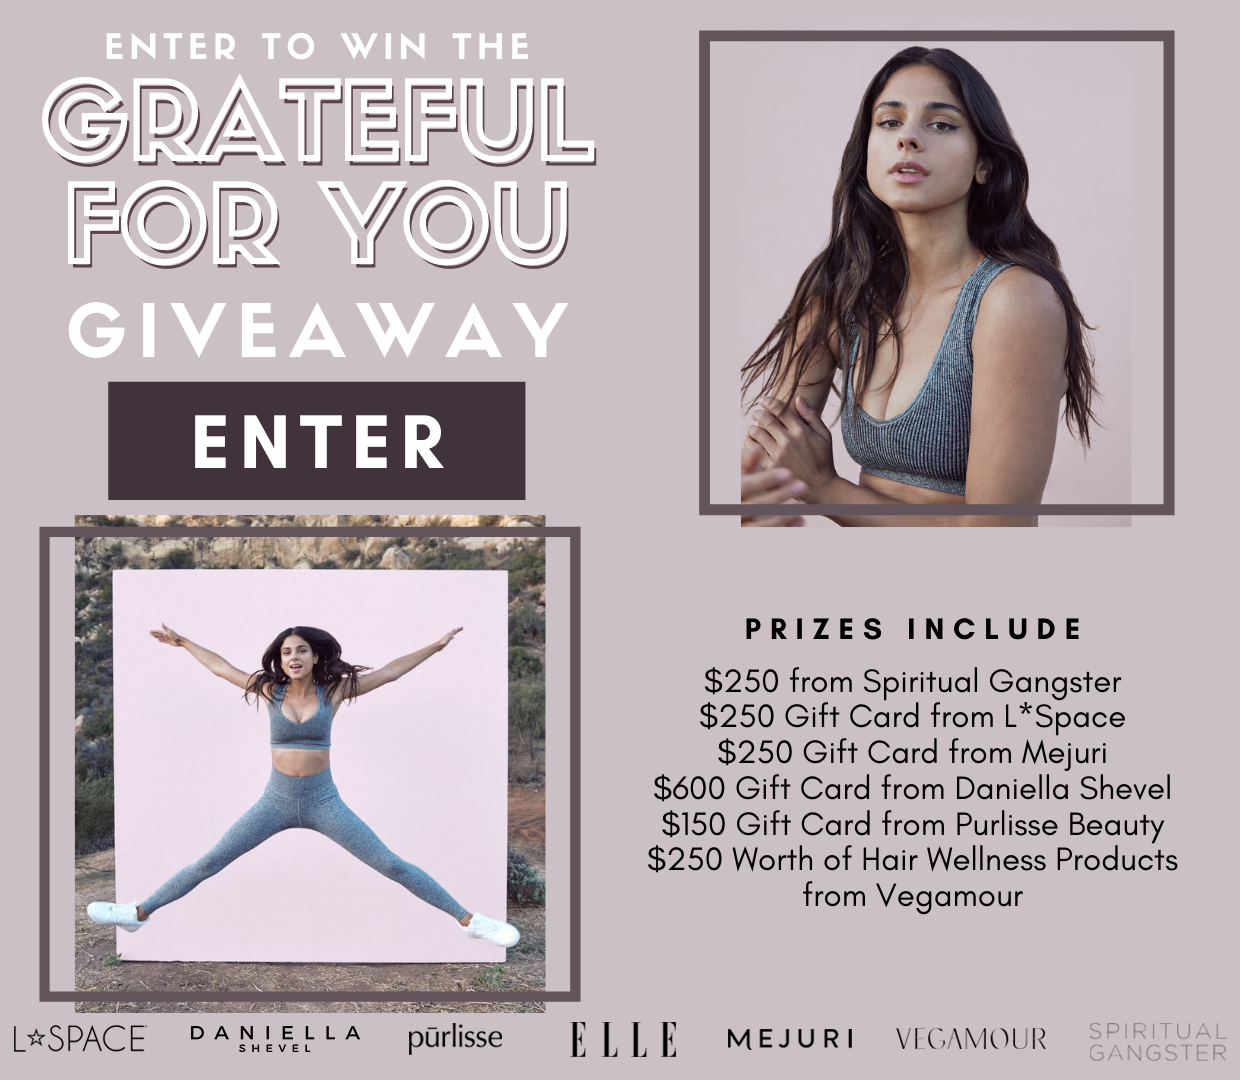 Enter for a chance to win: $250 from Spiritual Gangster, $250 Gift Card from L*Space, $250 Gift Card from Mejuri, $600 Gift Card from Daniella Shevel, $150 Gift Card from Purlisse Beauty, $250 Worth of Hair Wellness Products from Vegamour